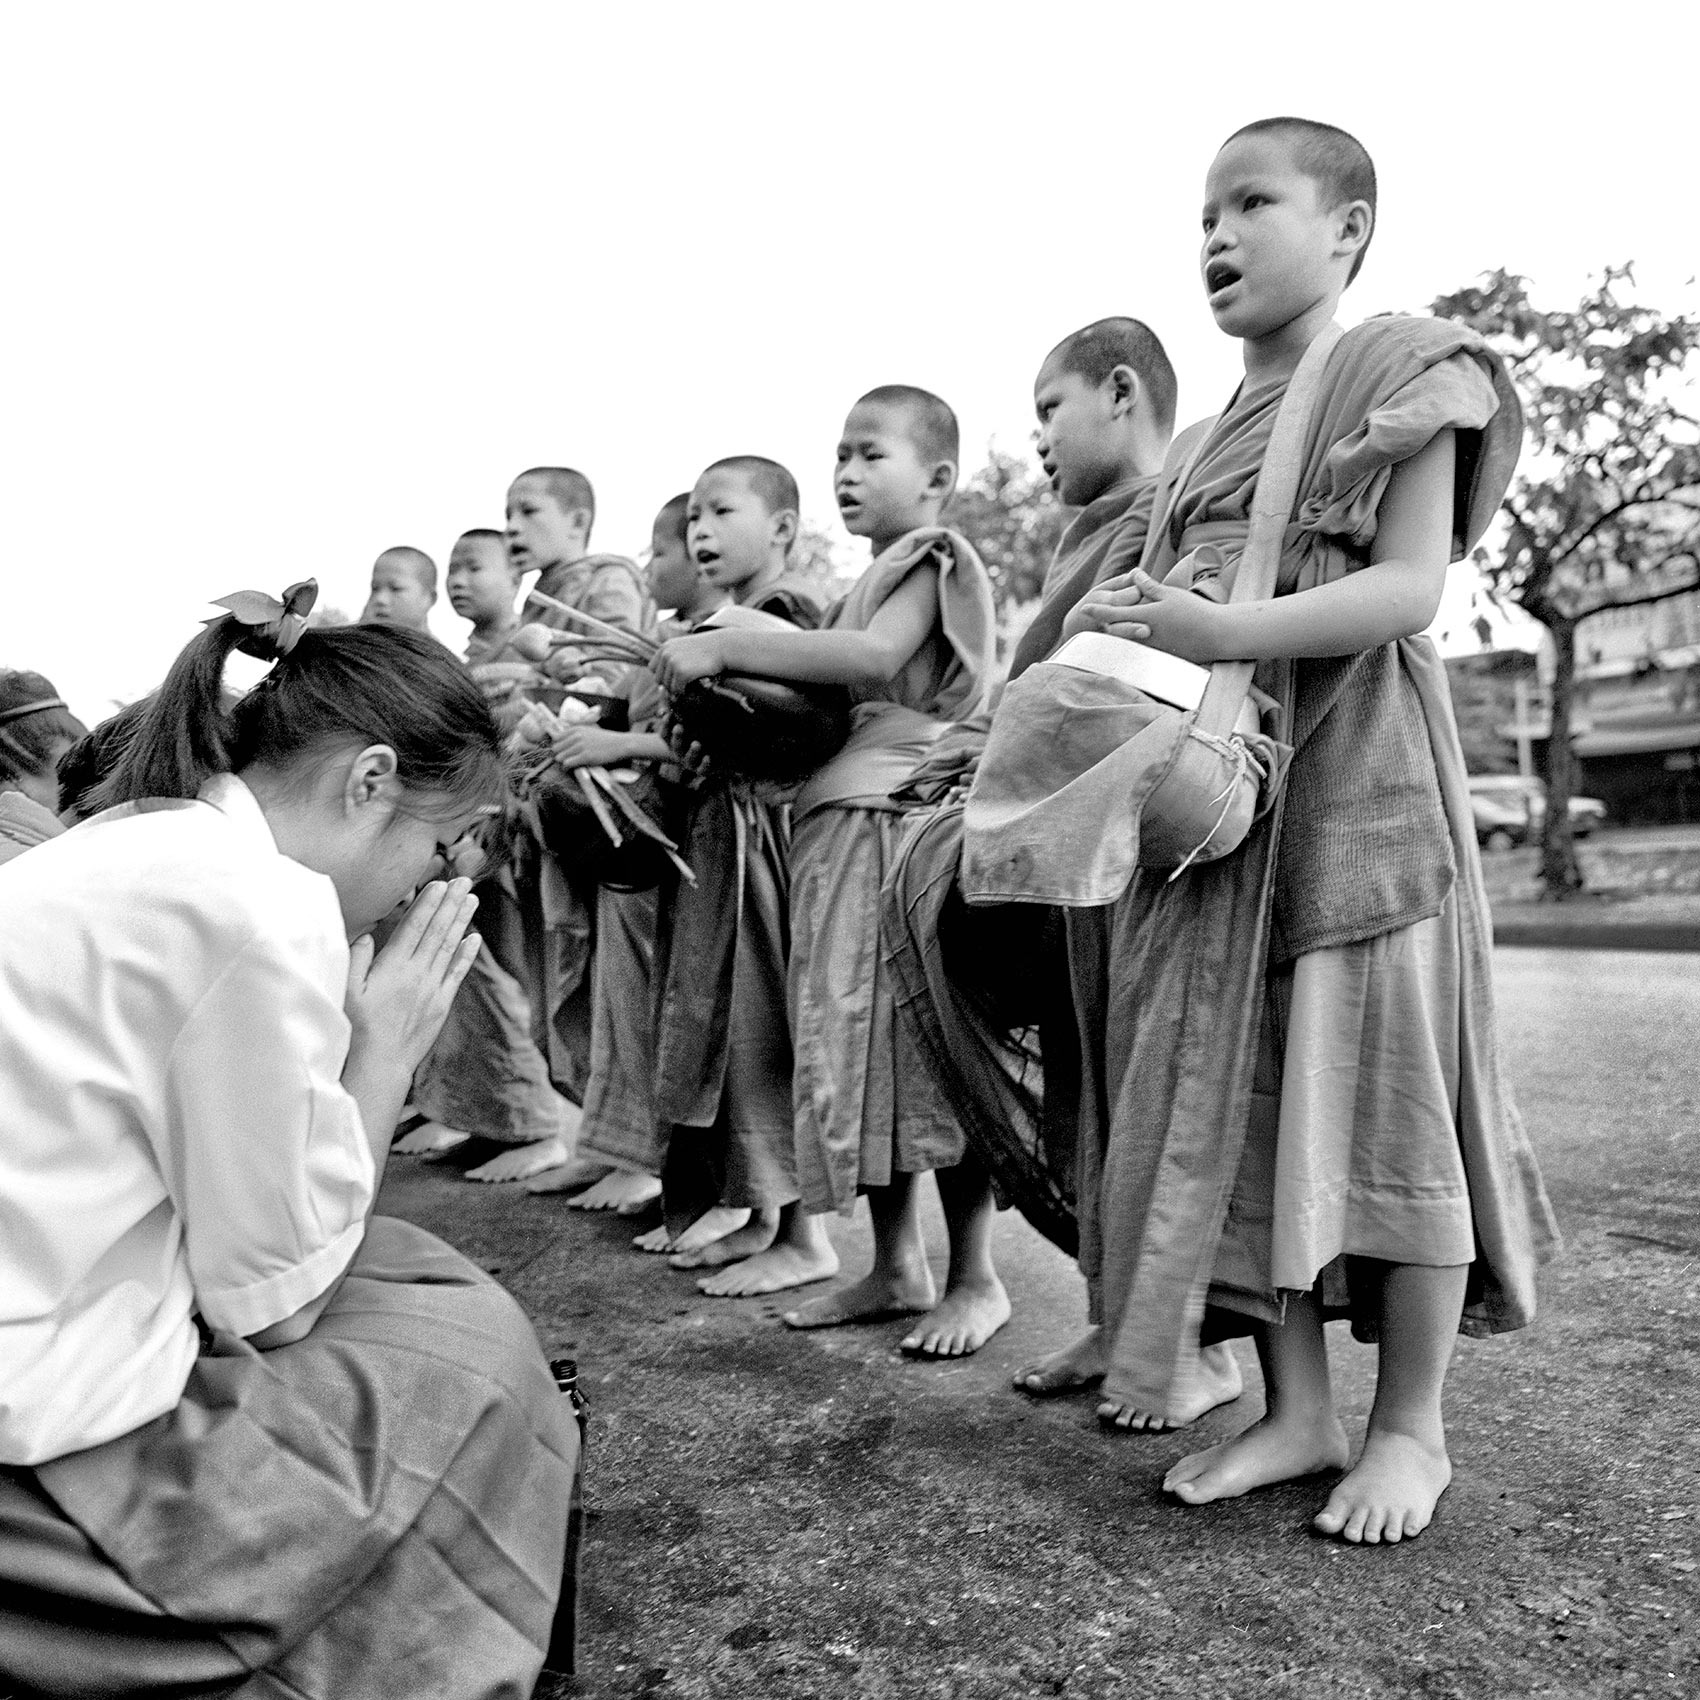 a-young-girl-bows-before-a-group-of-very-young-monks-on-a-street-in-northern-thailand